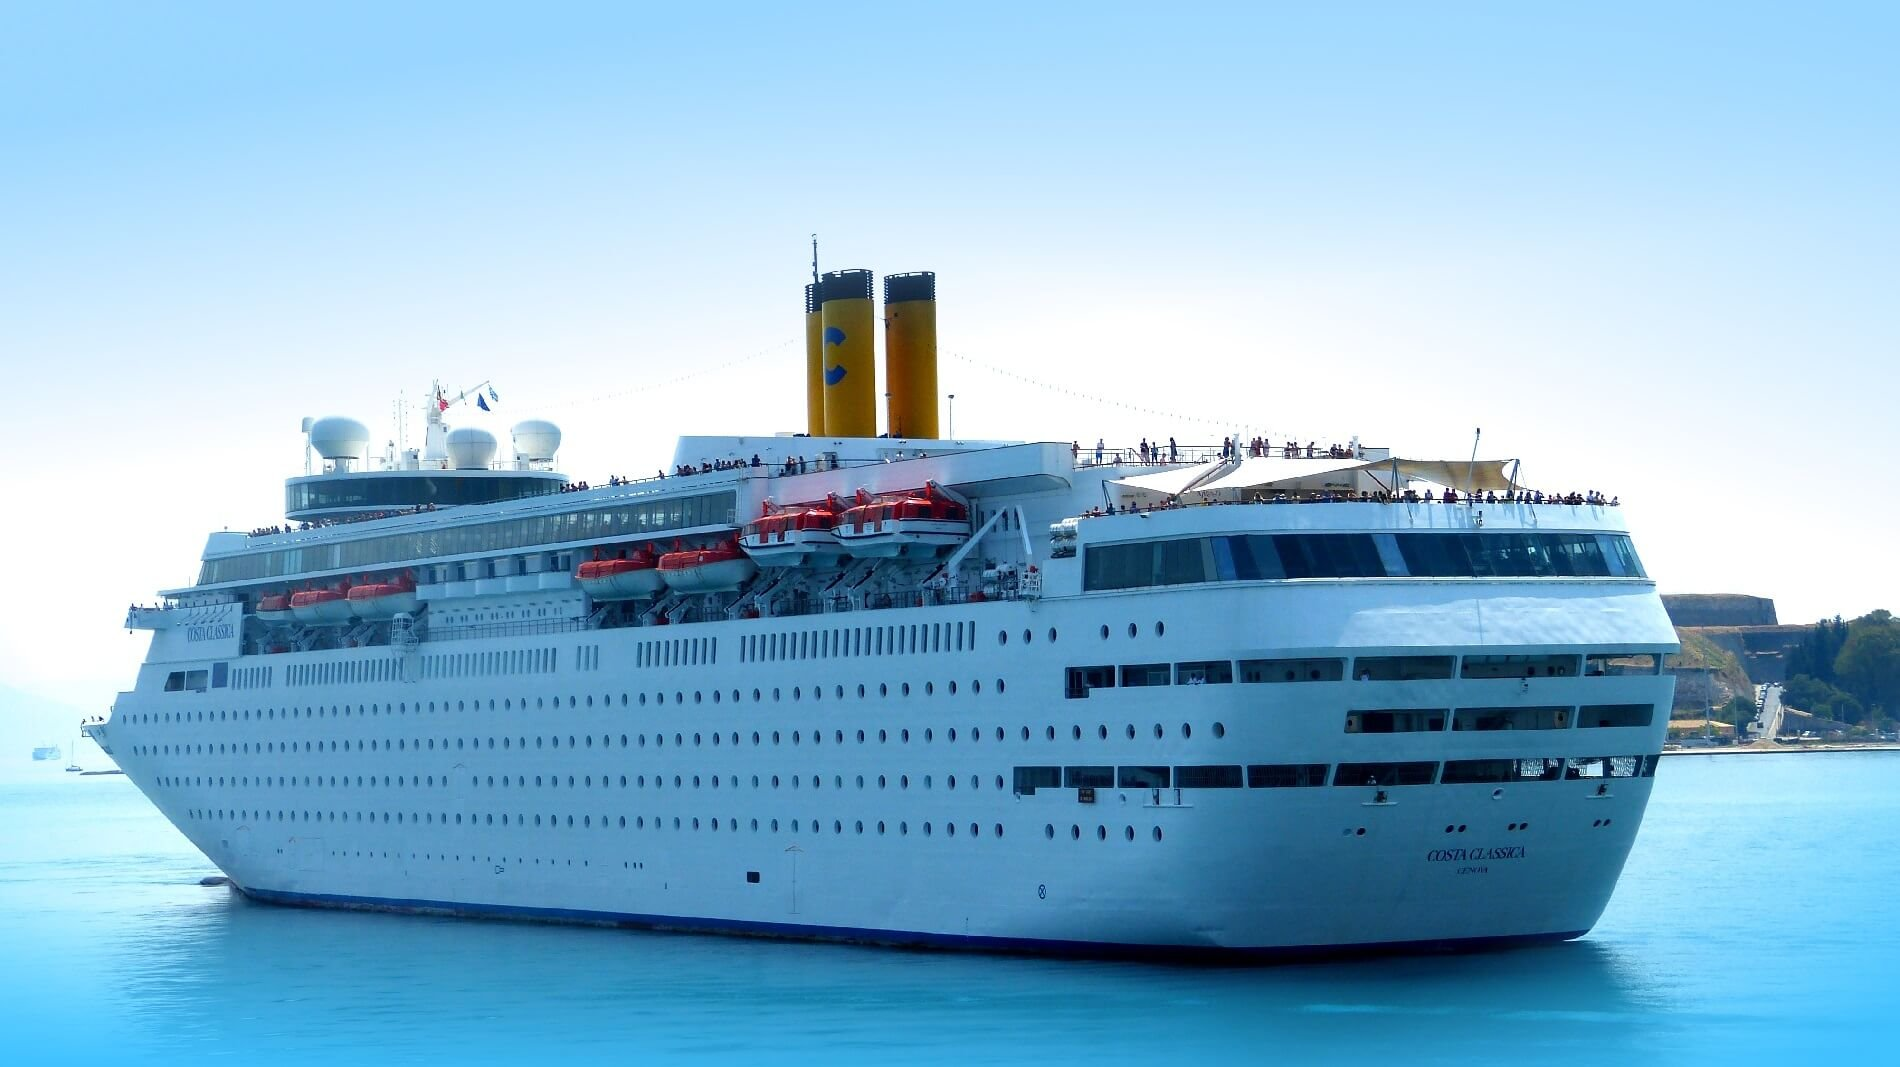 The First Cruise Ship Between Mumbai Maldives Will Set Sail In - Cruise ships from india